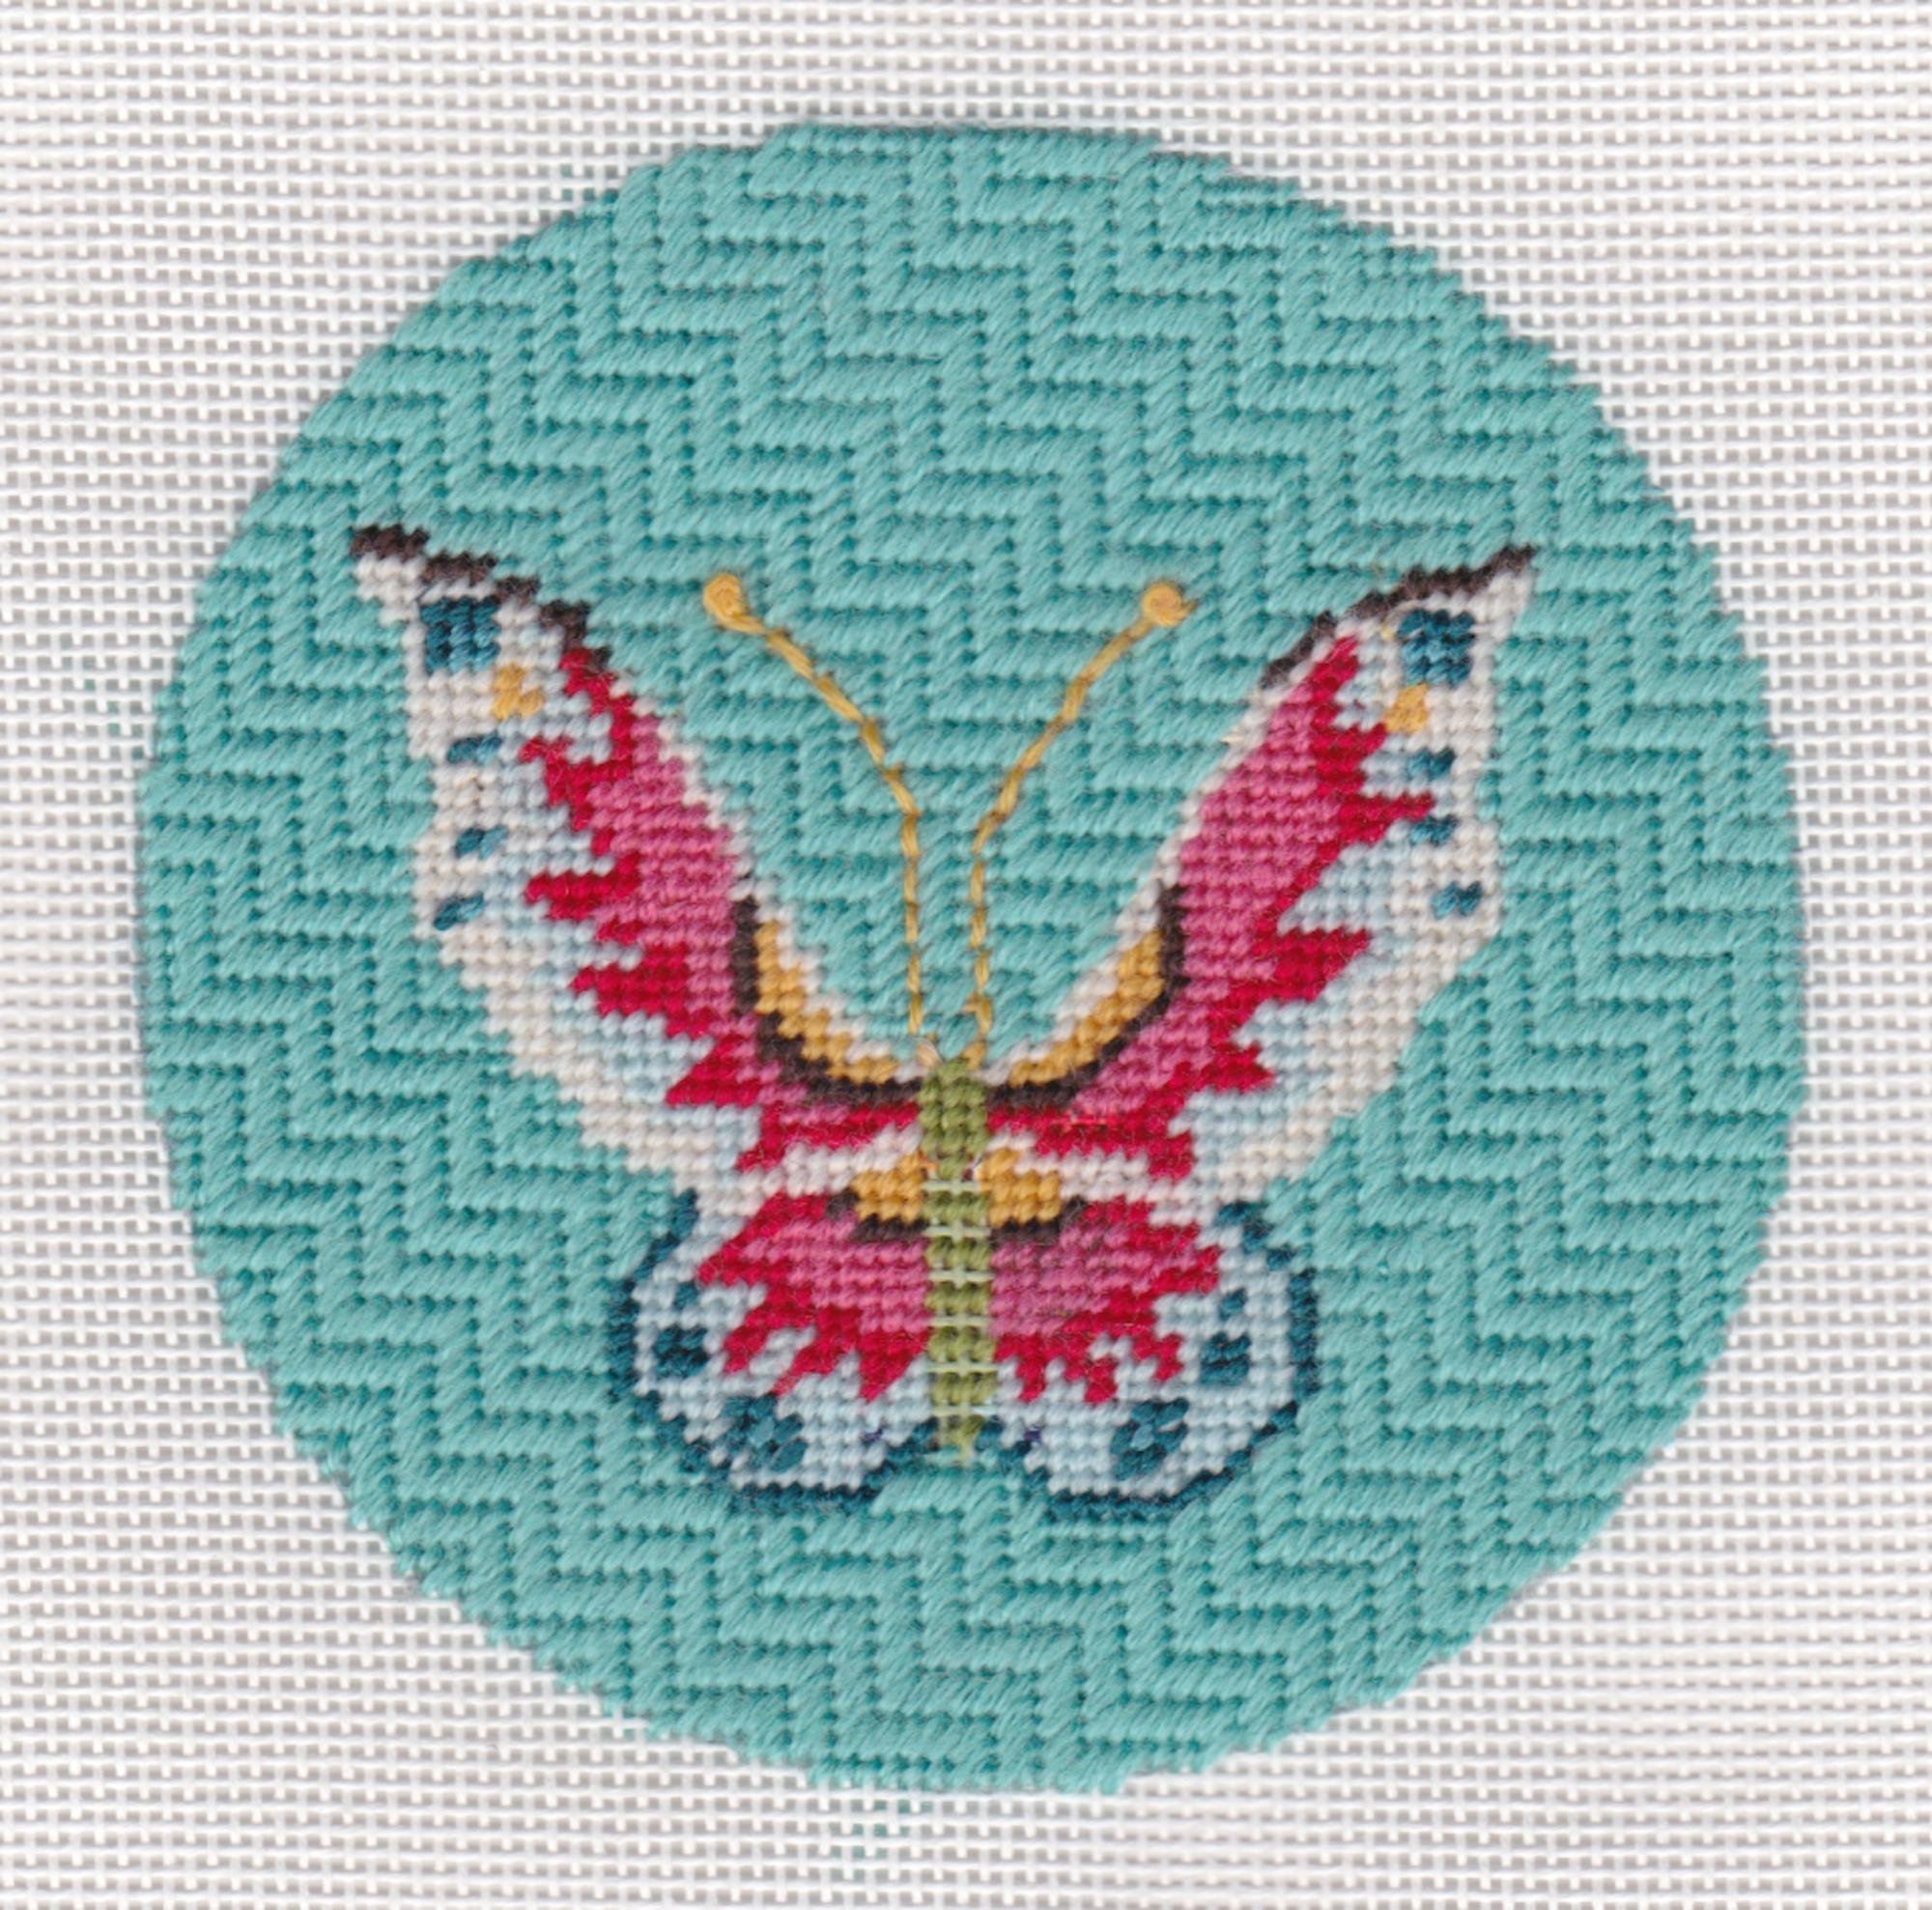 The design area measures 4 inches round and is stitch-painted on 18 ct. mesh mono Zweigart needlepoint canvas.